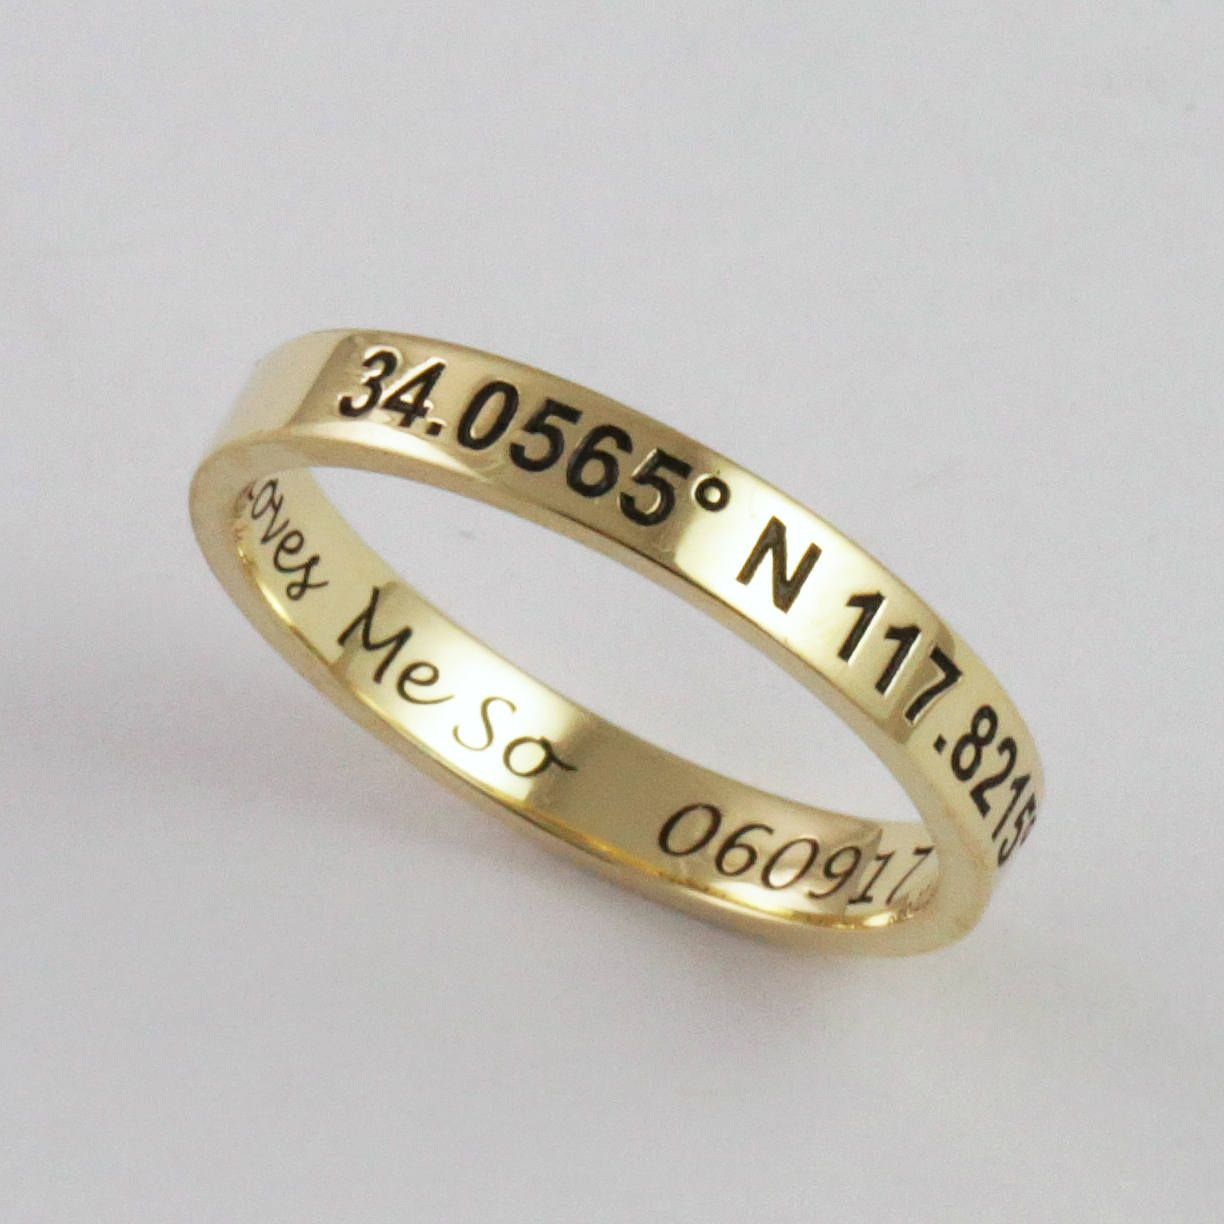 27e8974b53 Solid Gold Personalized Engraved Stacking Ring - 3mm x 1.2mm - 14k or 18k -  Custom Handwriting Coordinates